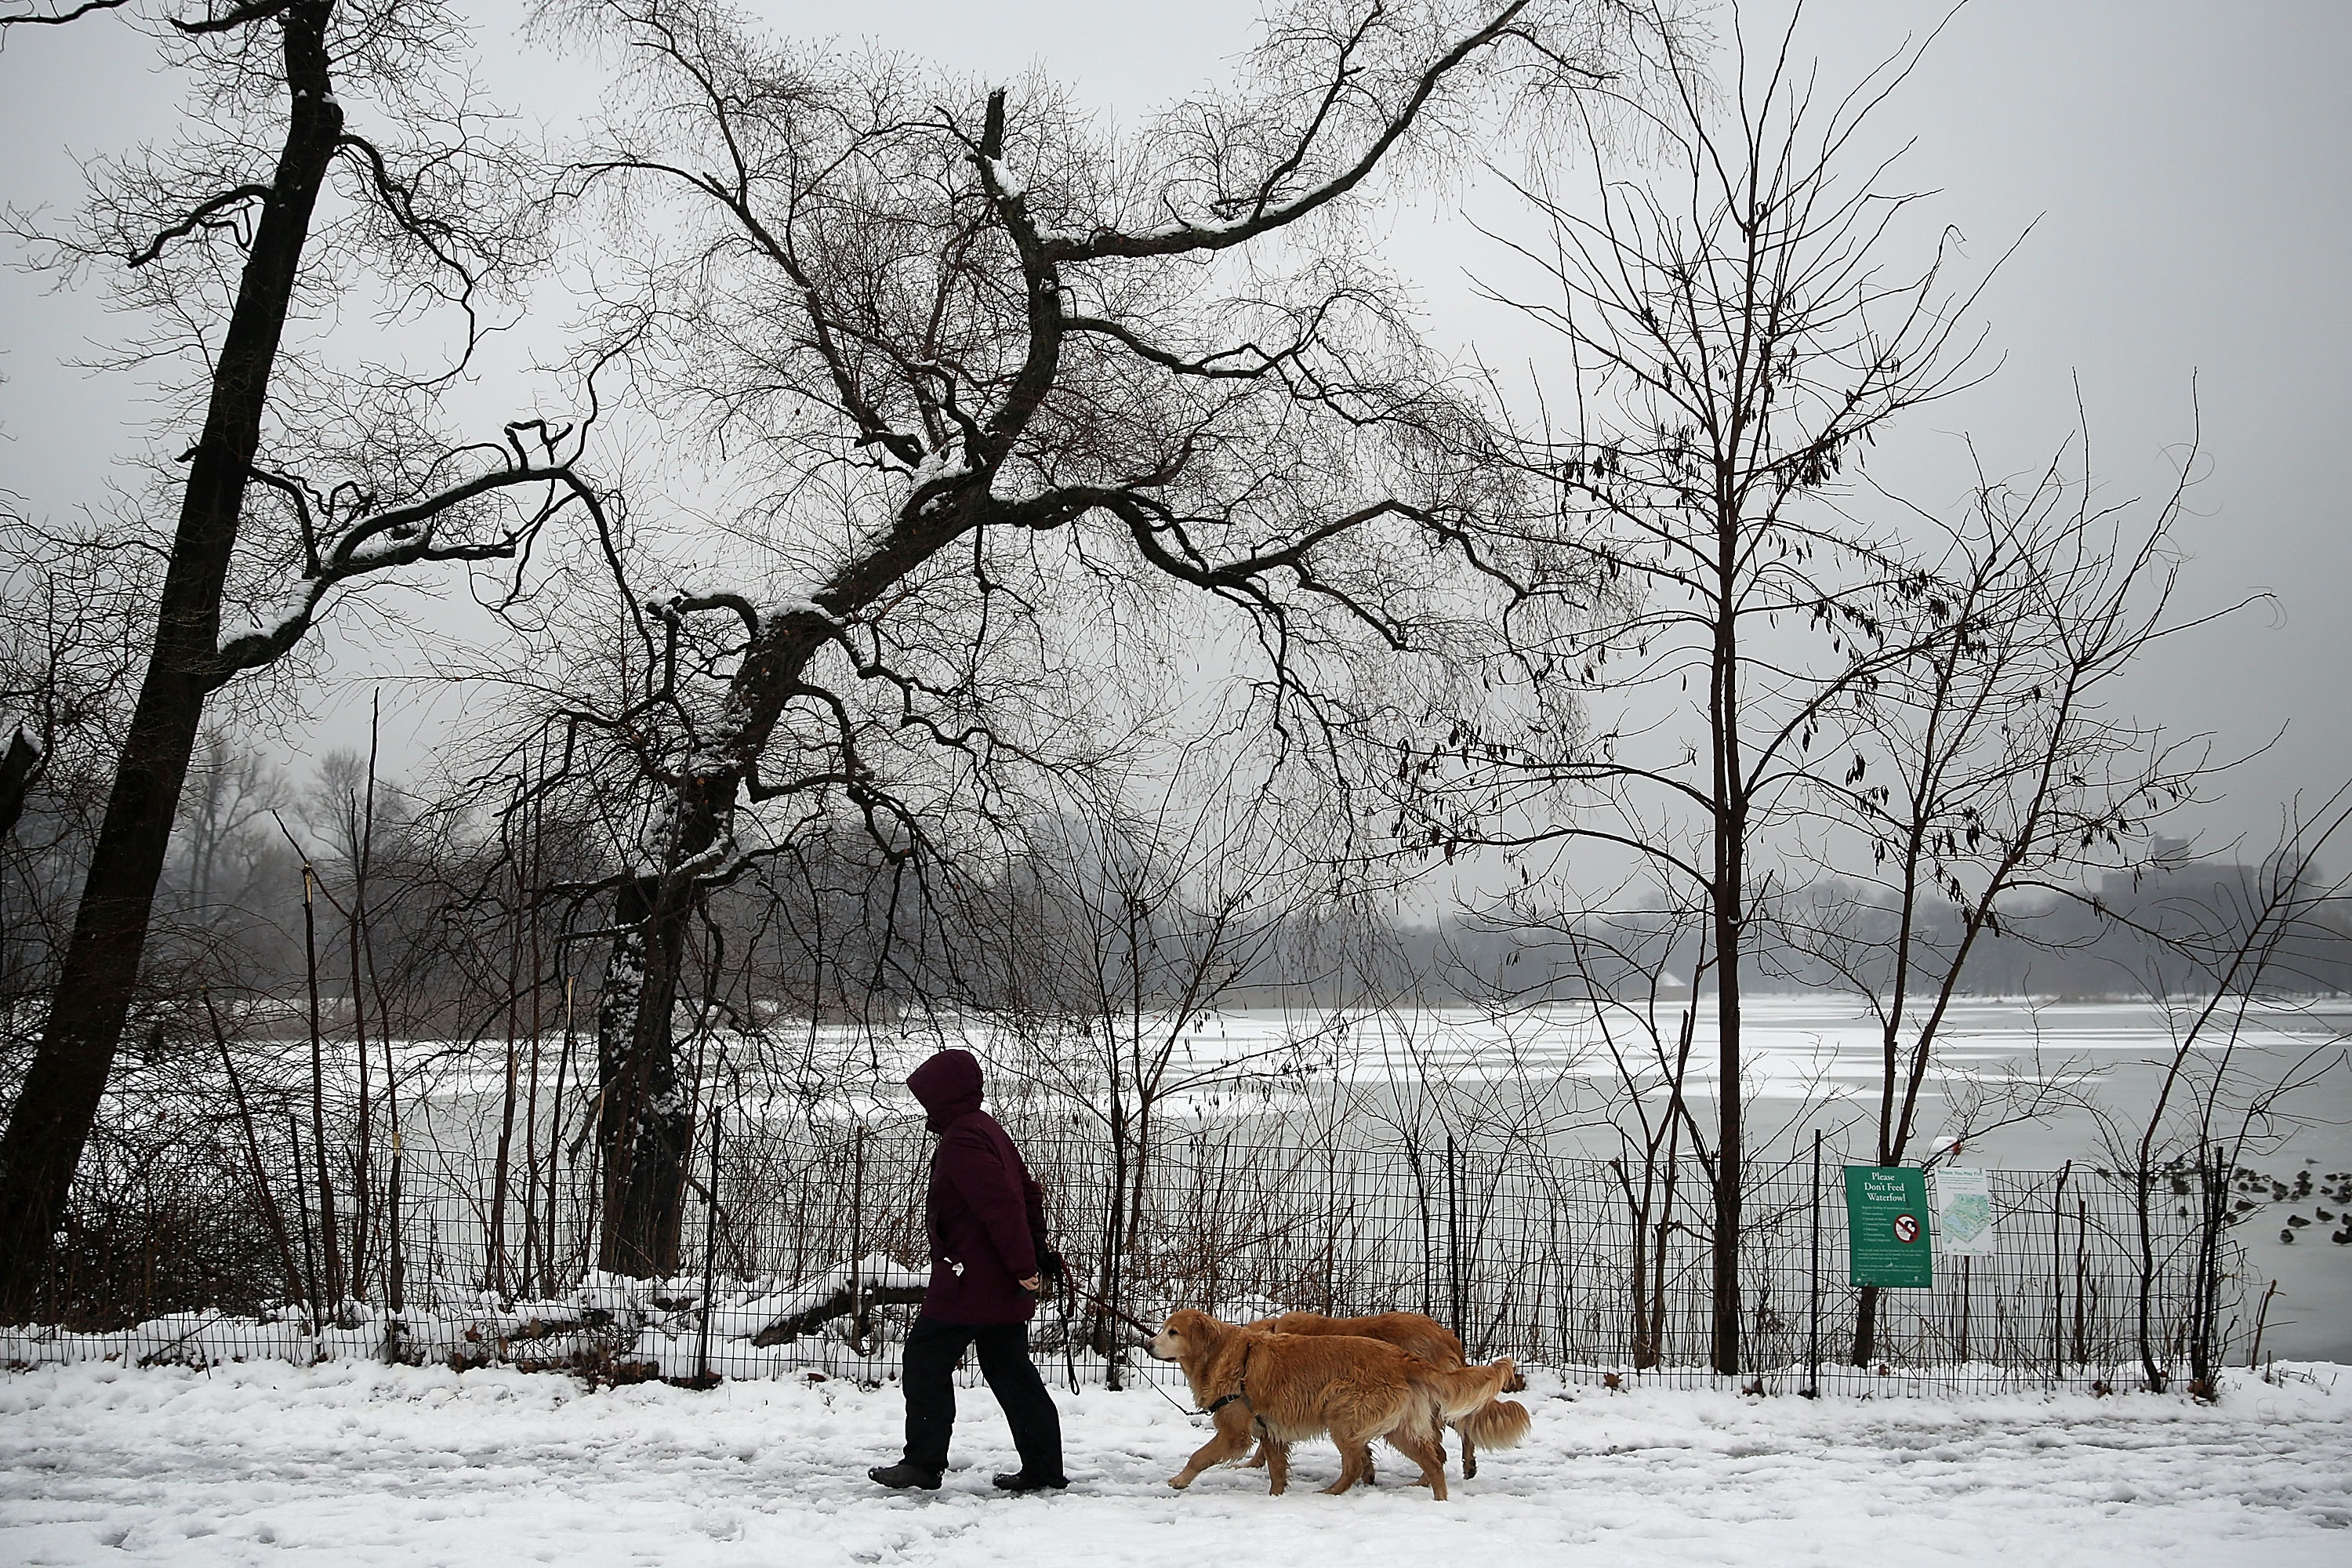 A woman walks dogs in Brooklyn's Prospect Park following an evening storm on Jan. 24, 2015 in New York City.